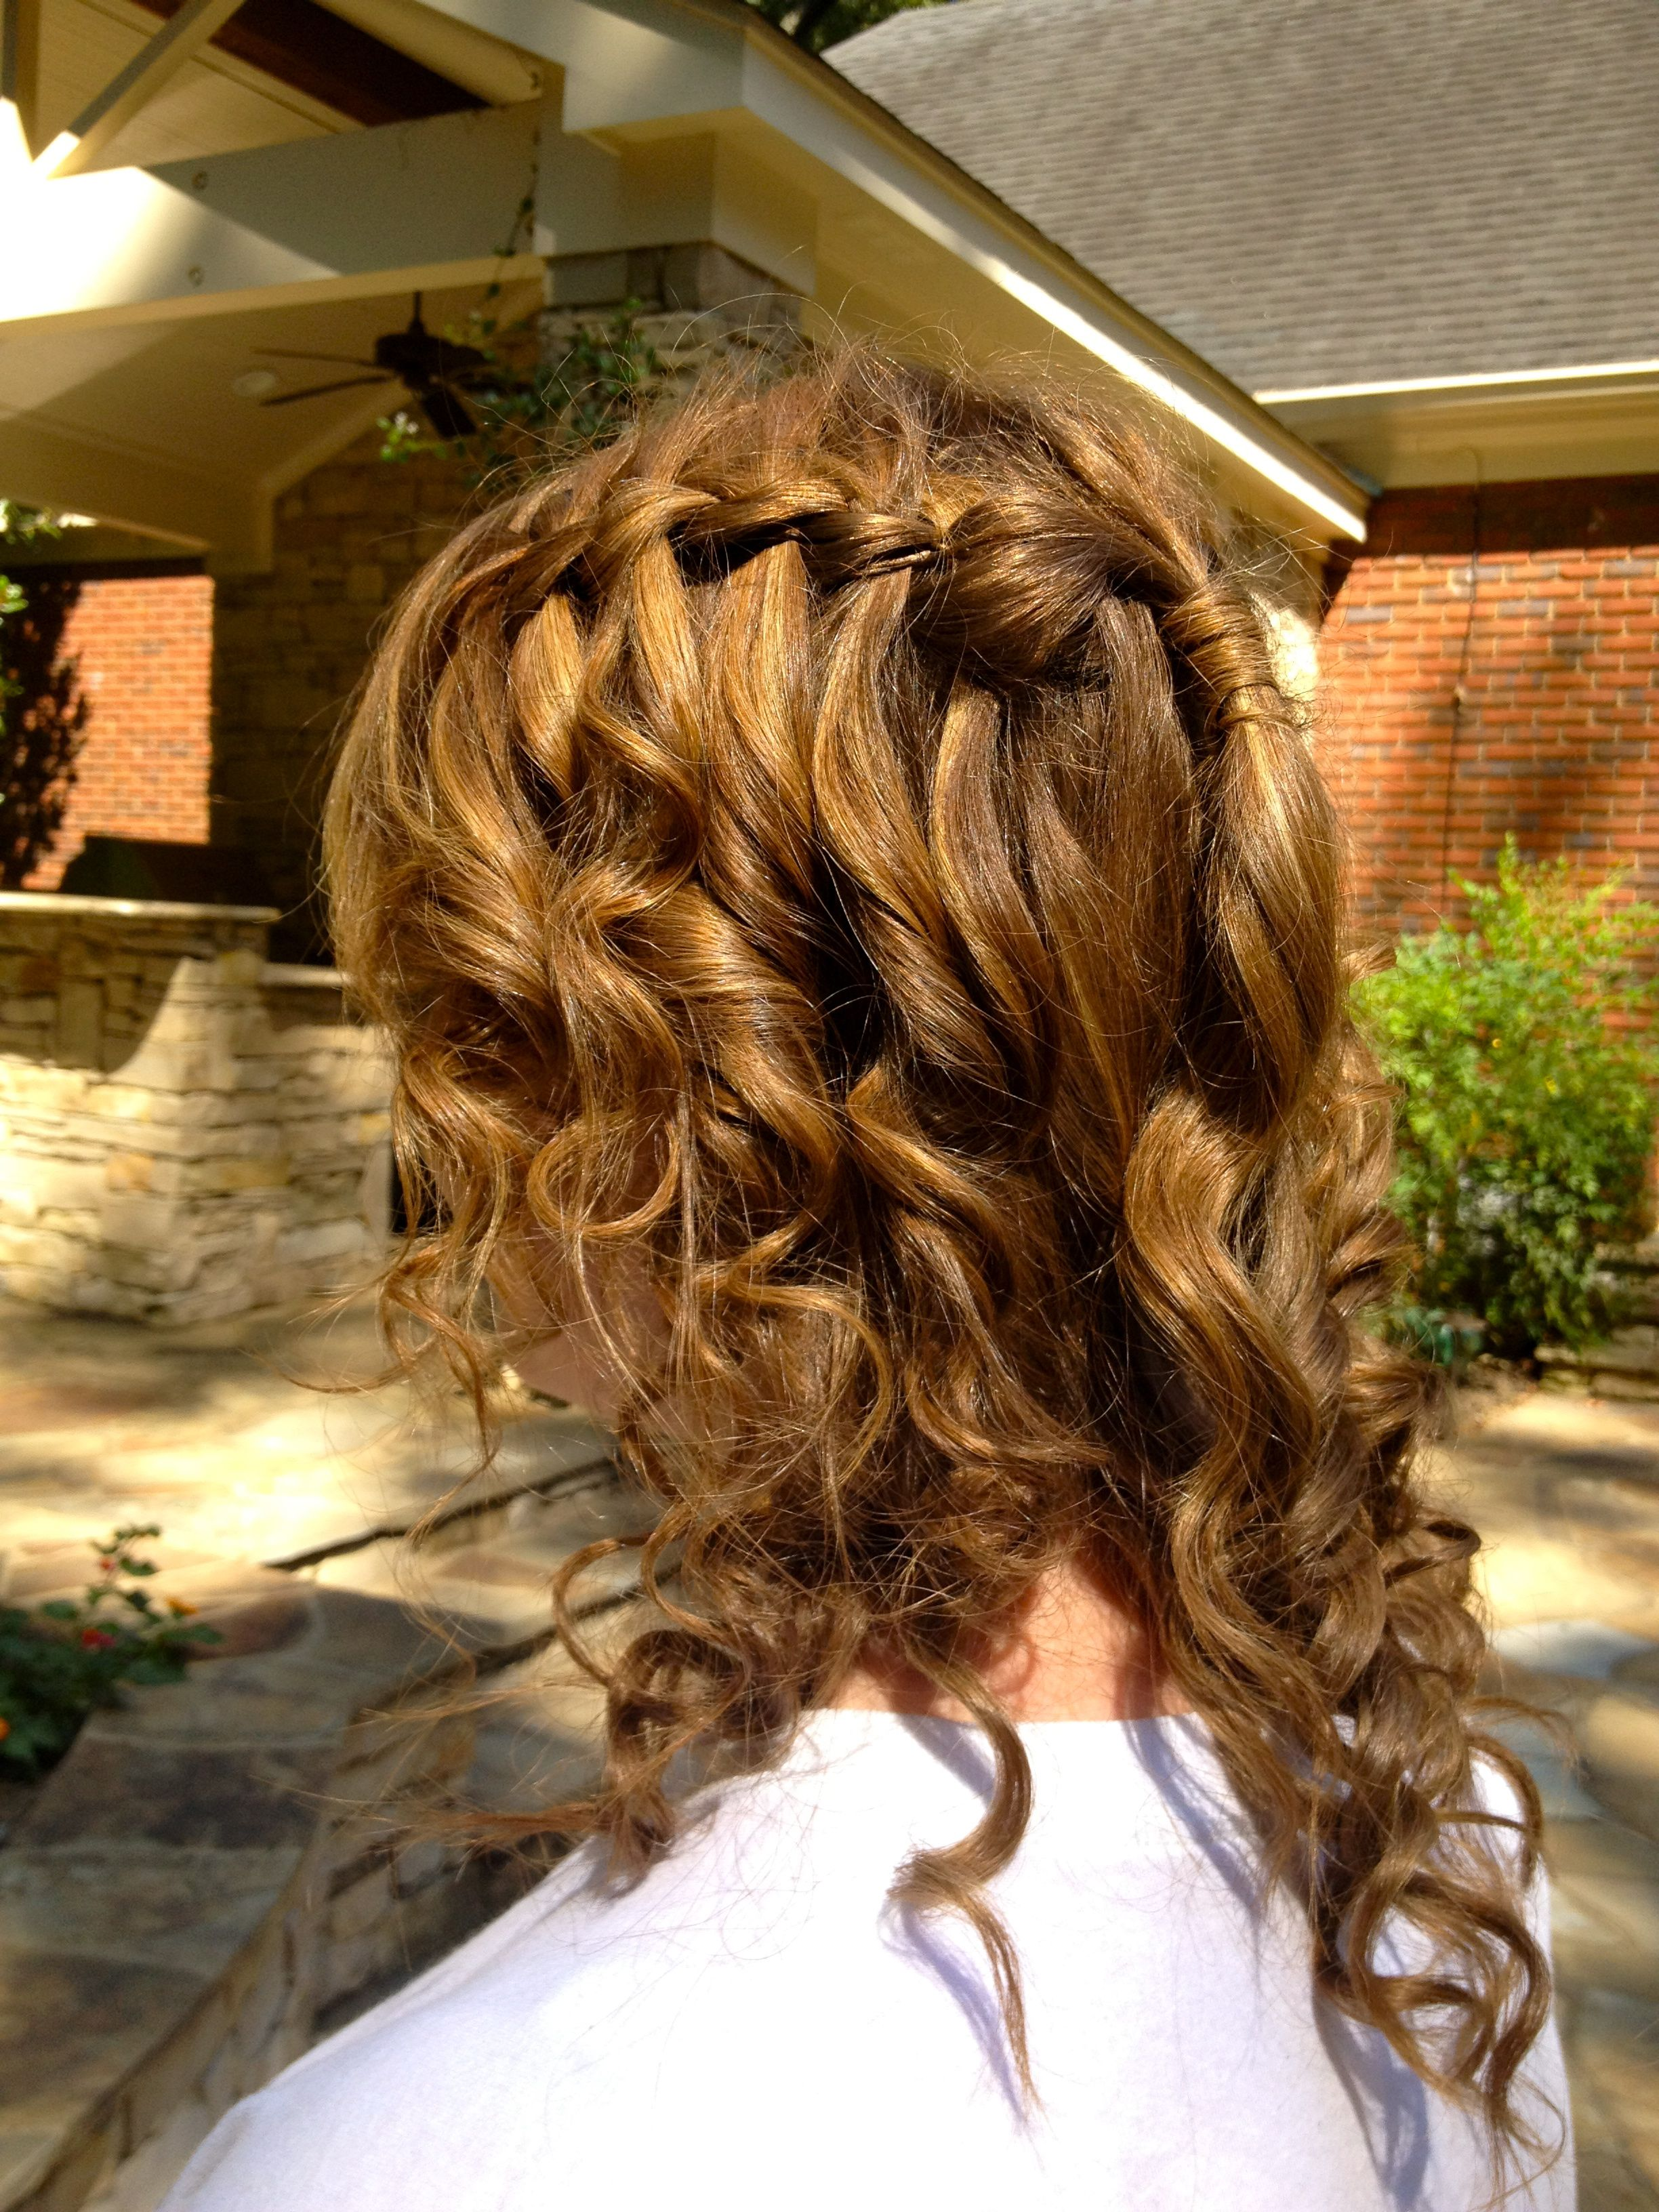 Waterfall Braid With T Swift Curls Conair Infiniti Pro Wand Or The Remington Studio Pearl Ceramic Found At Target Metal Causes